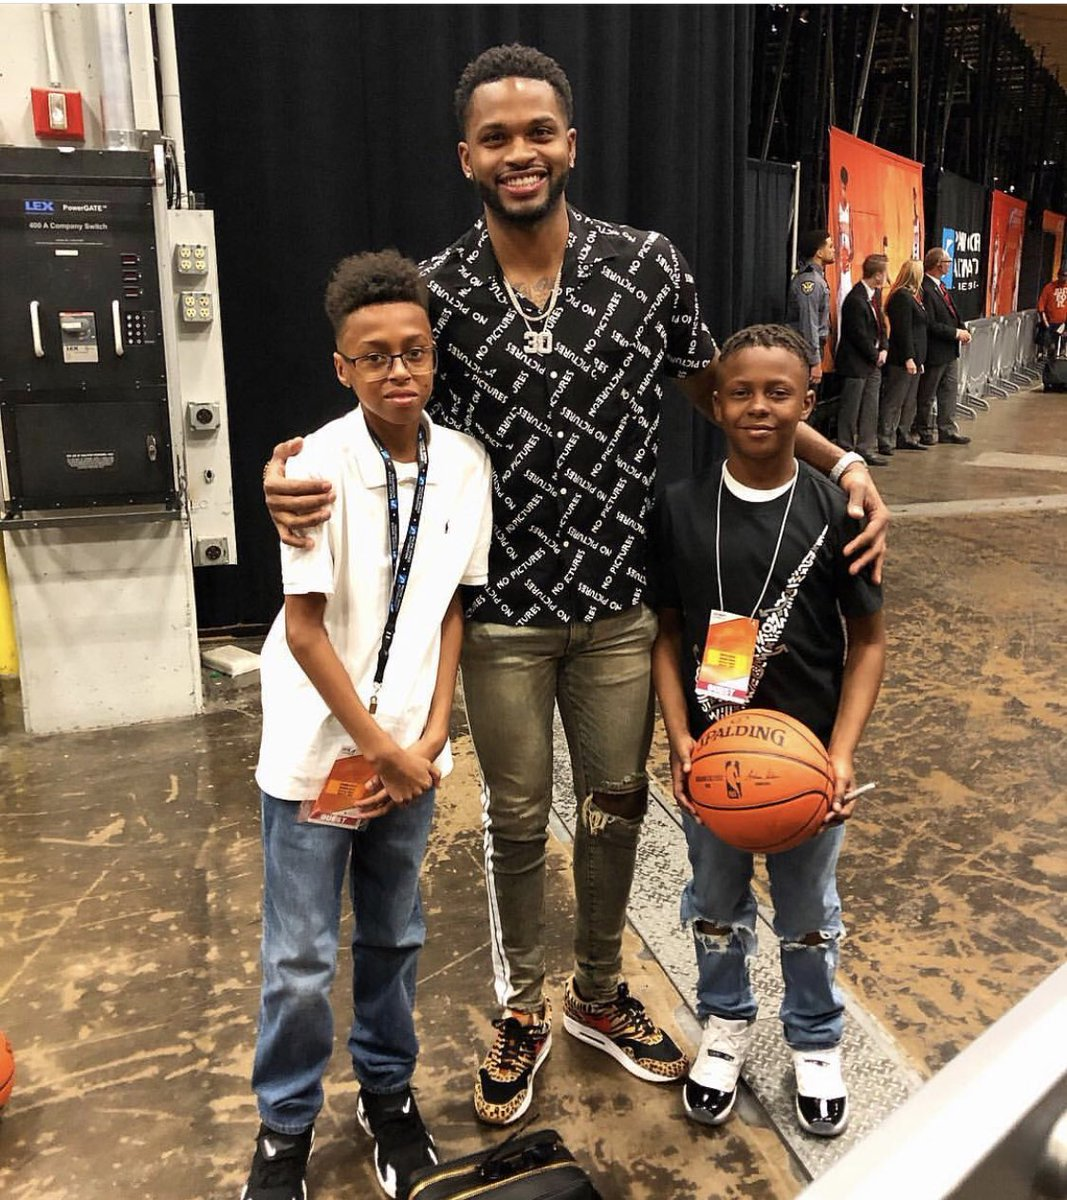 These 2 Young Men won The Sportsmanship award at my camp last summer.. So they got a free trip to come see Me and Lebron play here in Phoenix.. Congrats guys.. glad you had a good time..!! #VA #DreamBig #Blessed